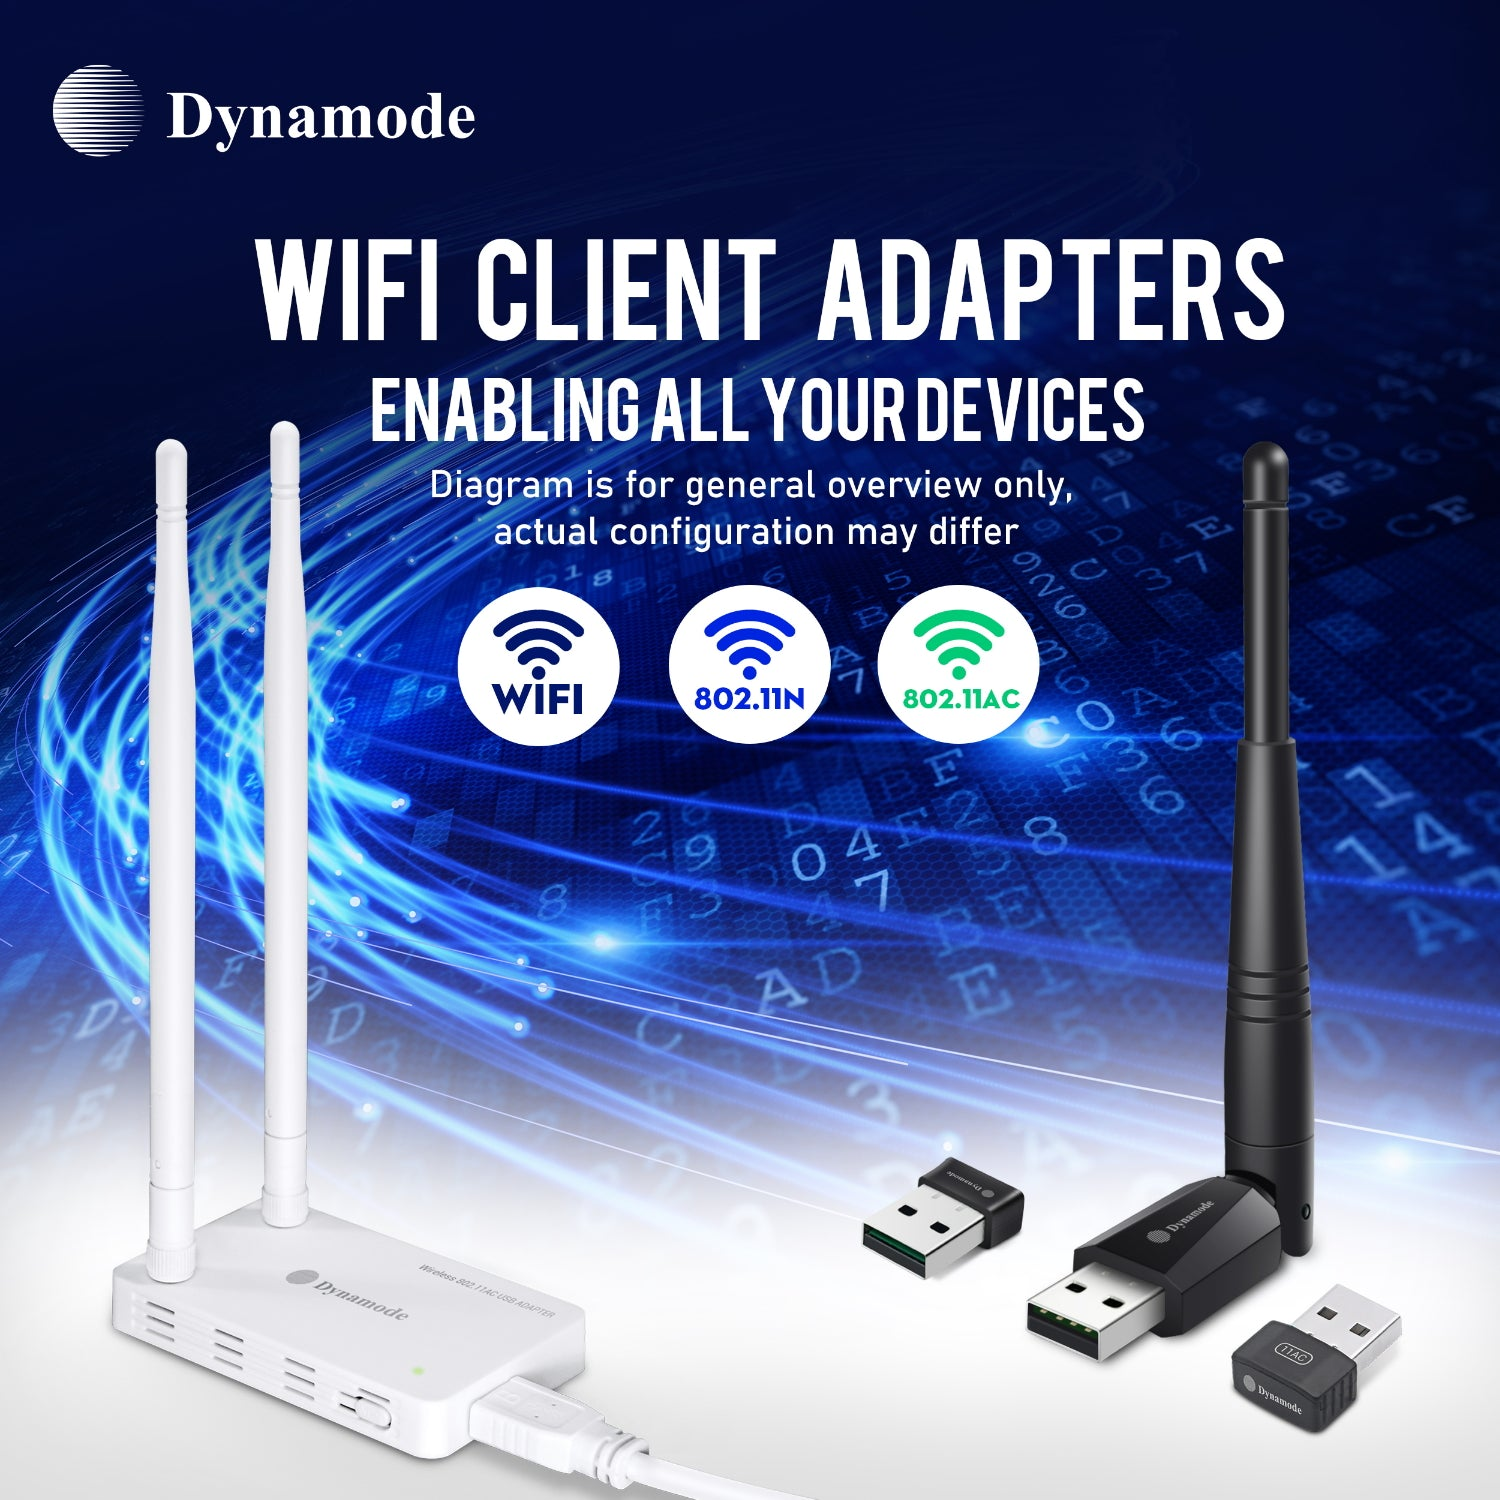 WiFi Plug n' Play High-Gain Client Adapter 150Mbps - USB Interface (WL-700N-ART)